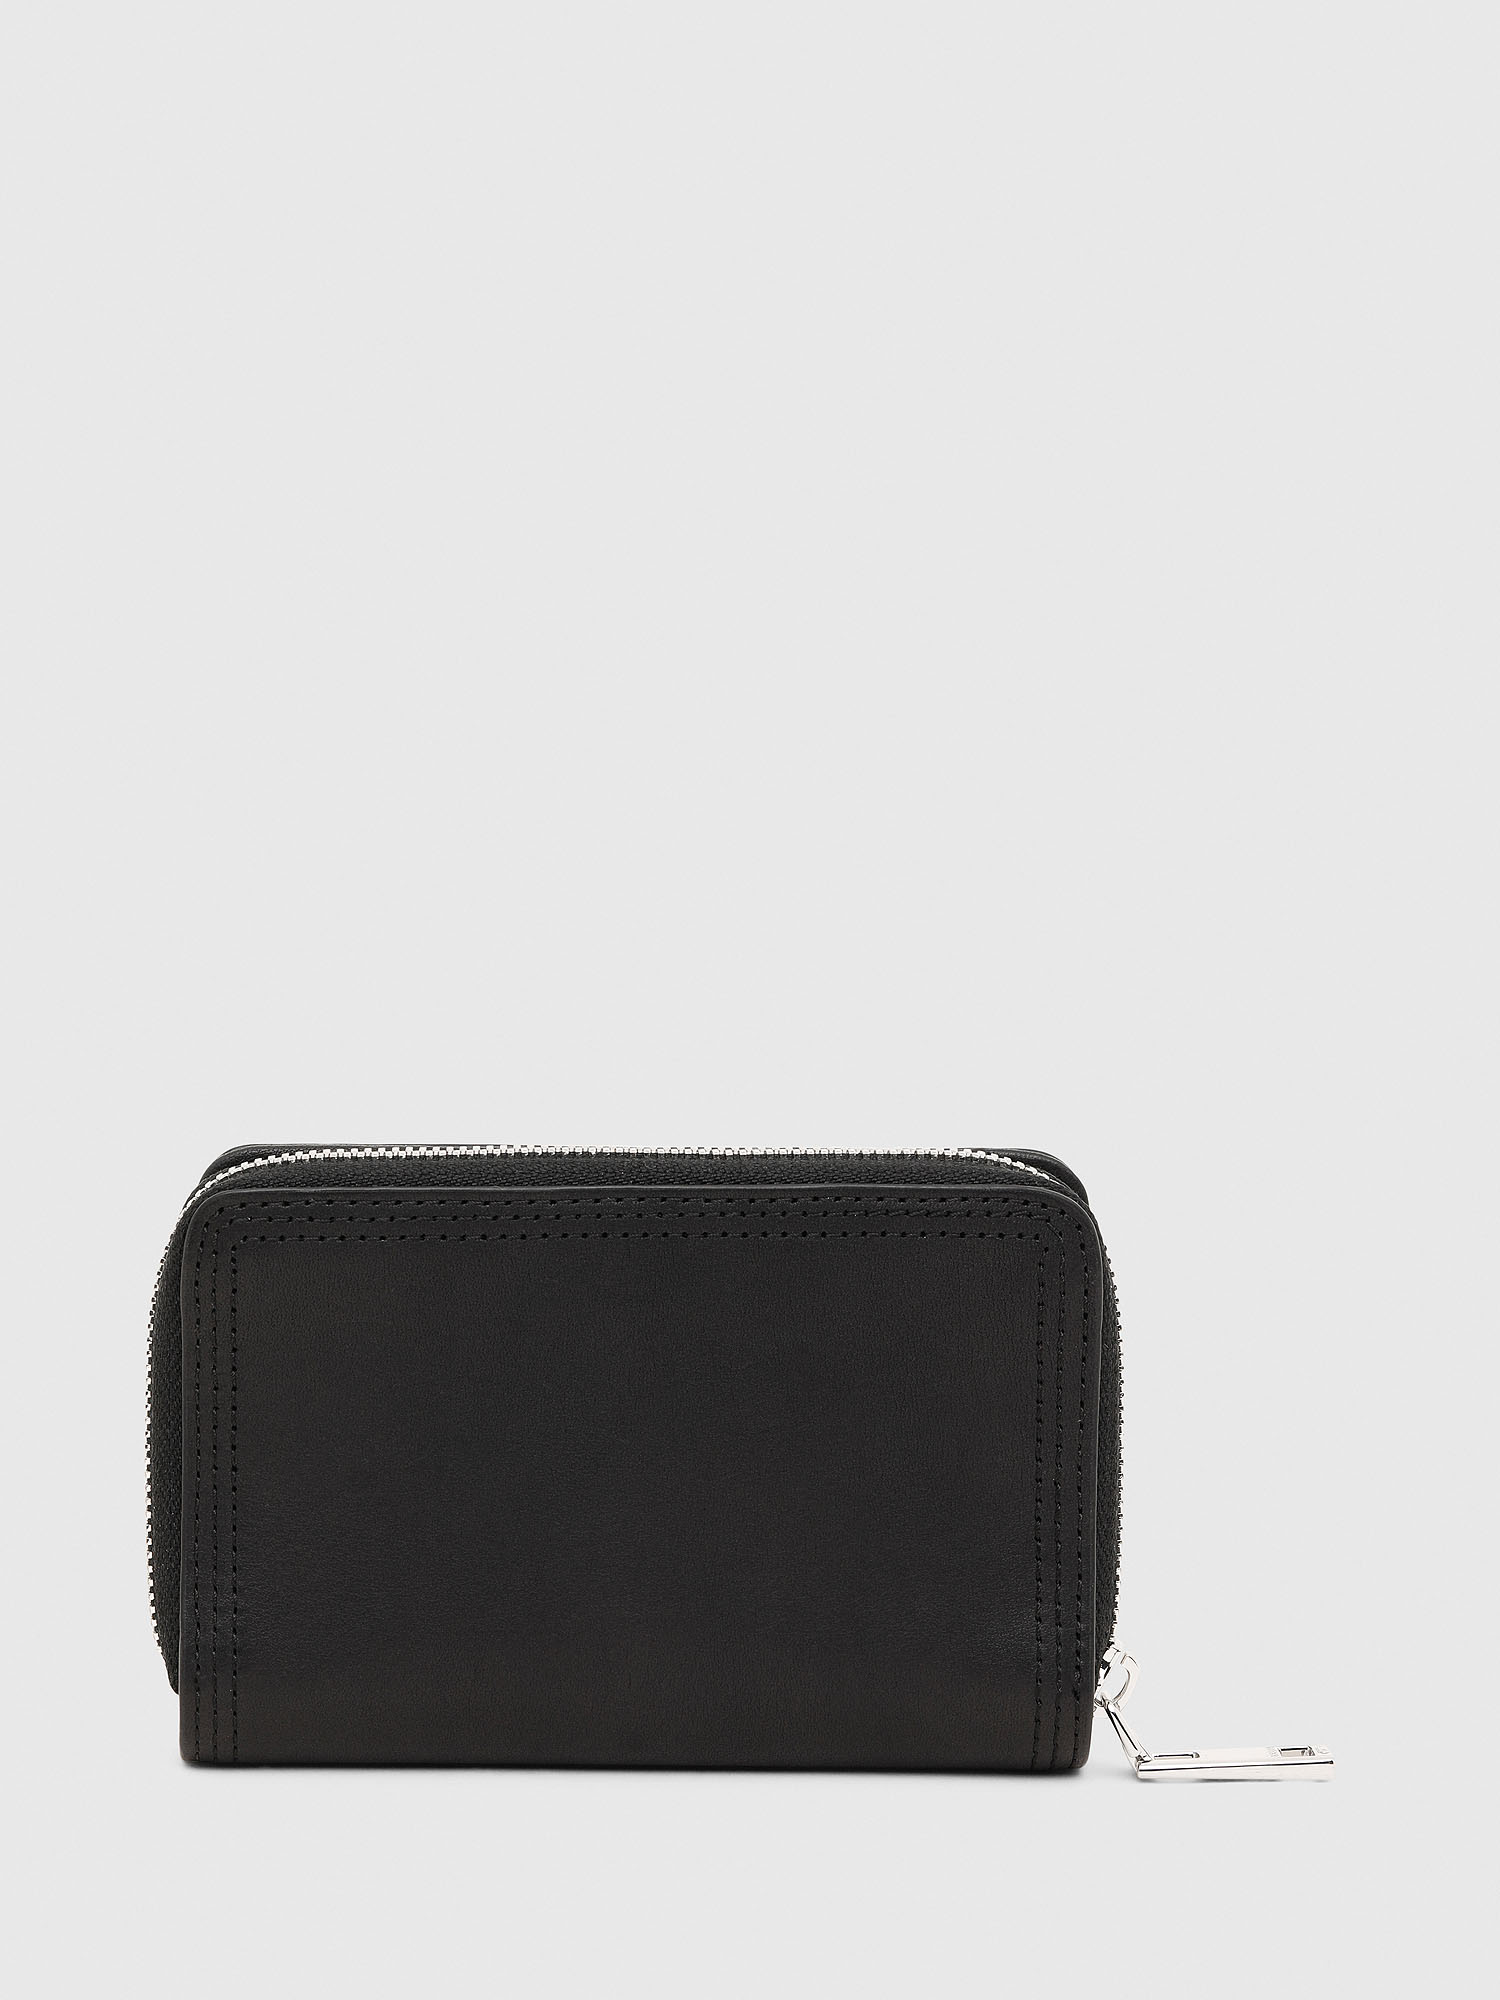 Diesel - BUSINESS LC,  - Small Wallets - Image 2